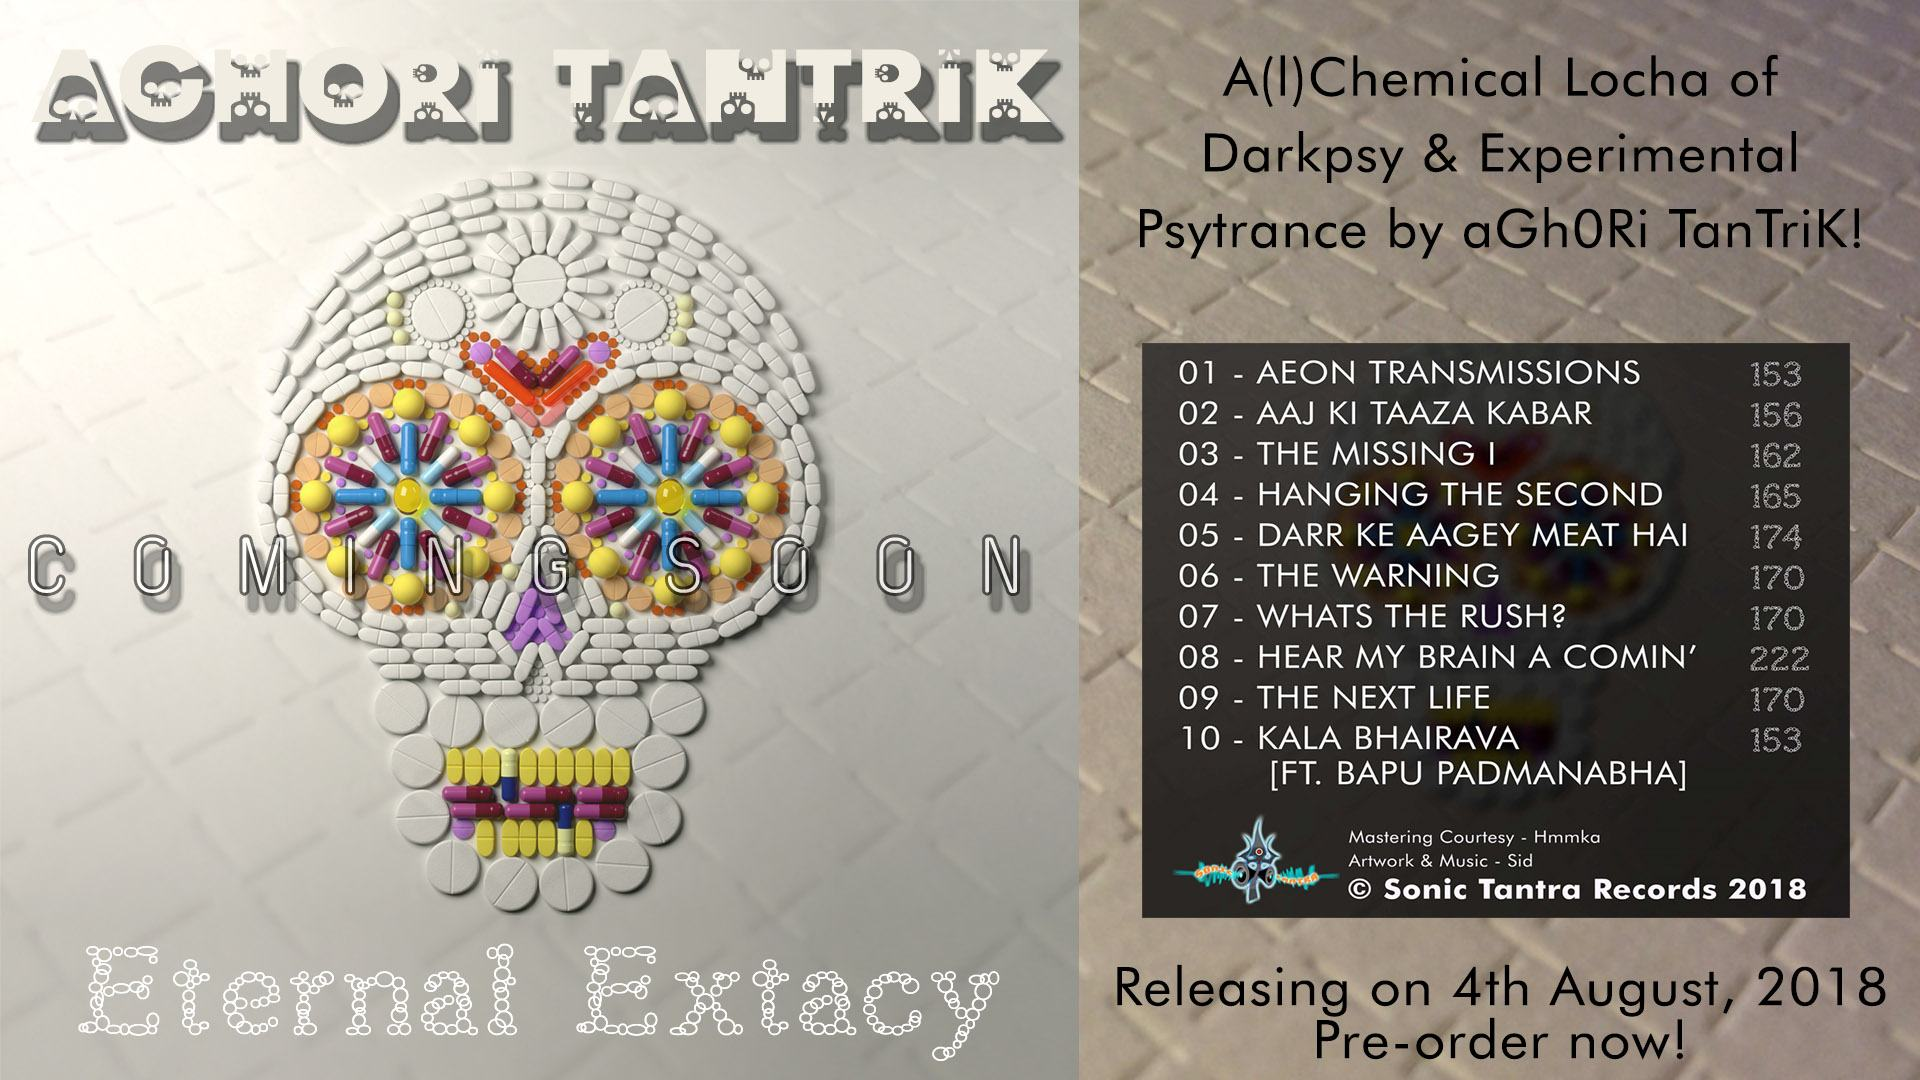 preorder dark psytrance album by aghori tantrik on sonic tantra